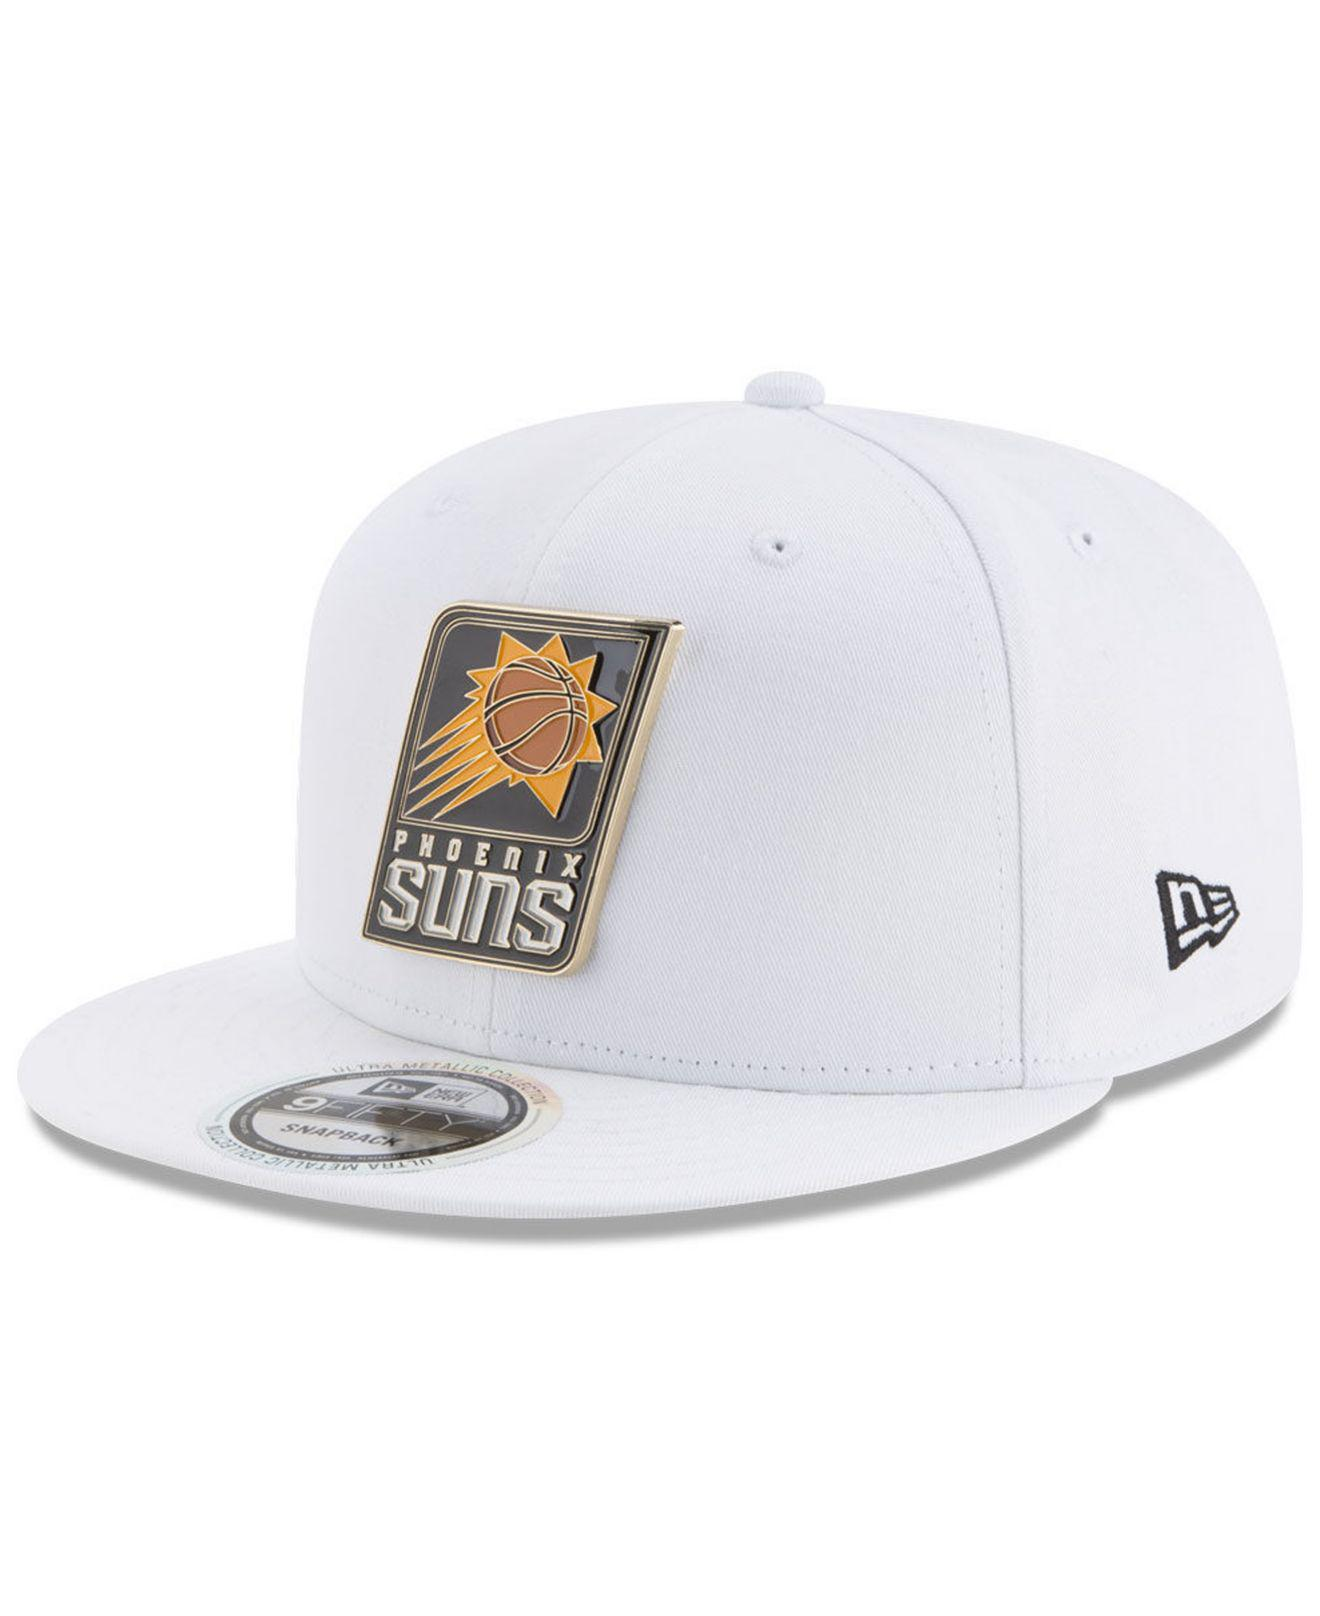 reputable site 77d6f fa037 Lyst - KTZ Phoenix Suns Enamel Badge 9fifty Snapback Cap in White ...